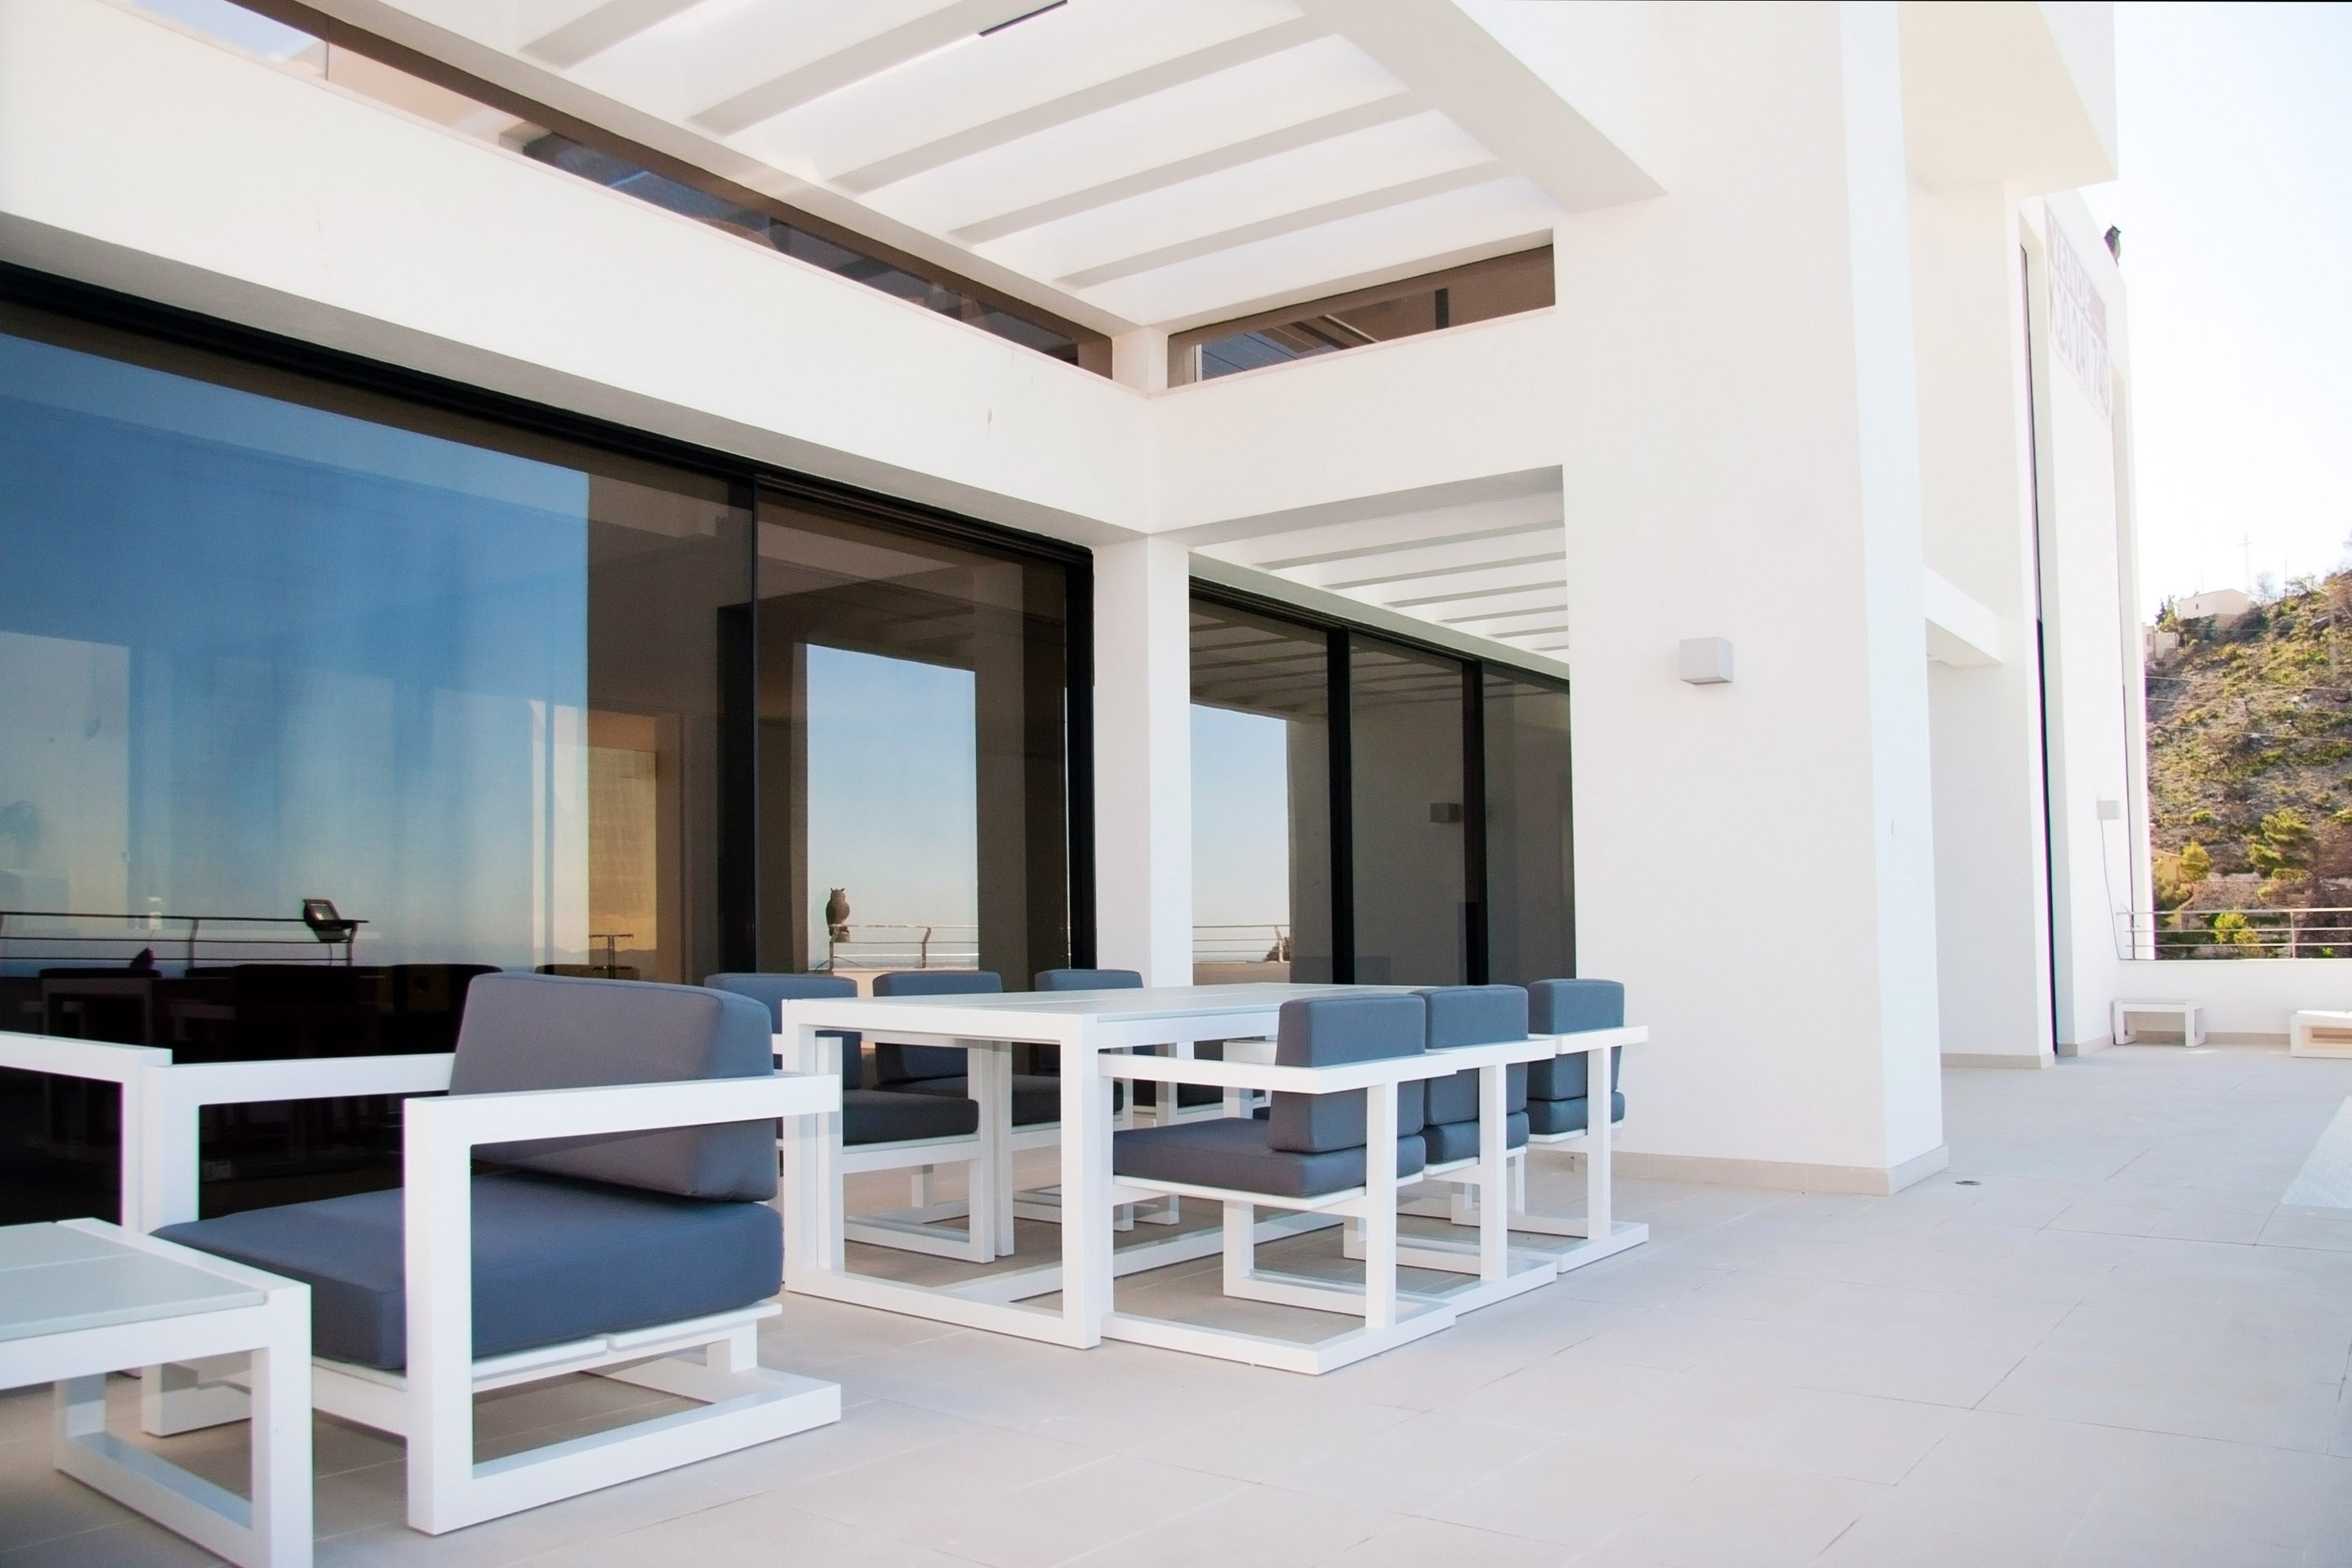 patio and pergola designs Modern Mansions Superlatives -La Perla del Mediterraneo by Carlos Gilardi